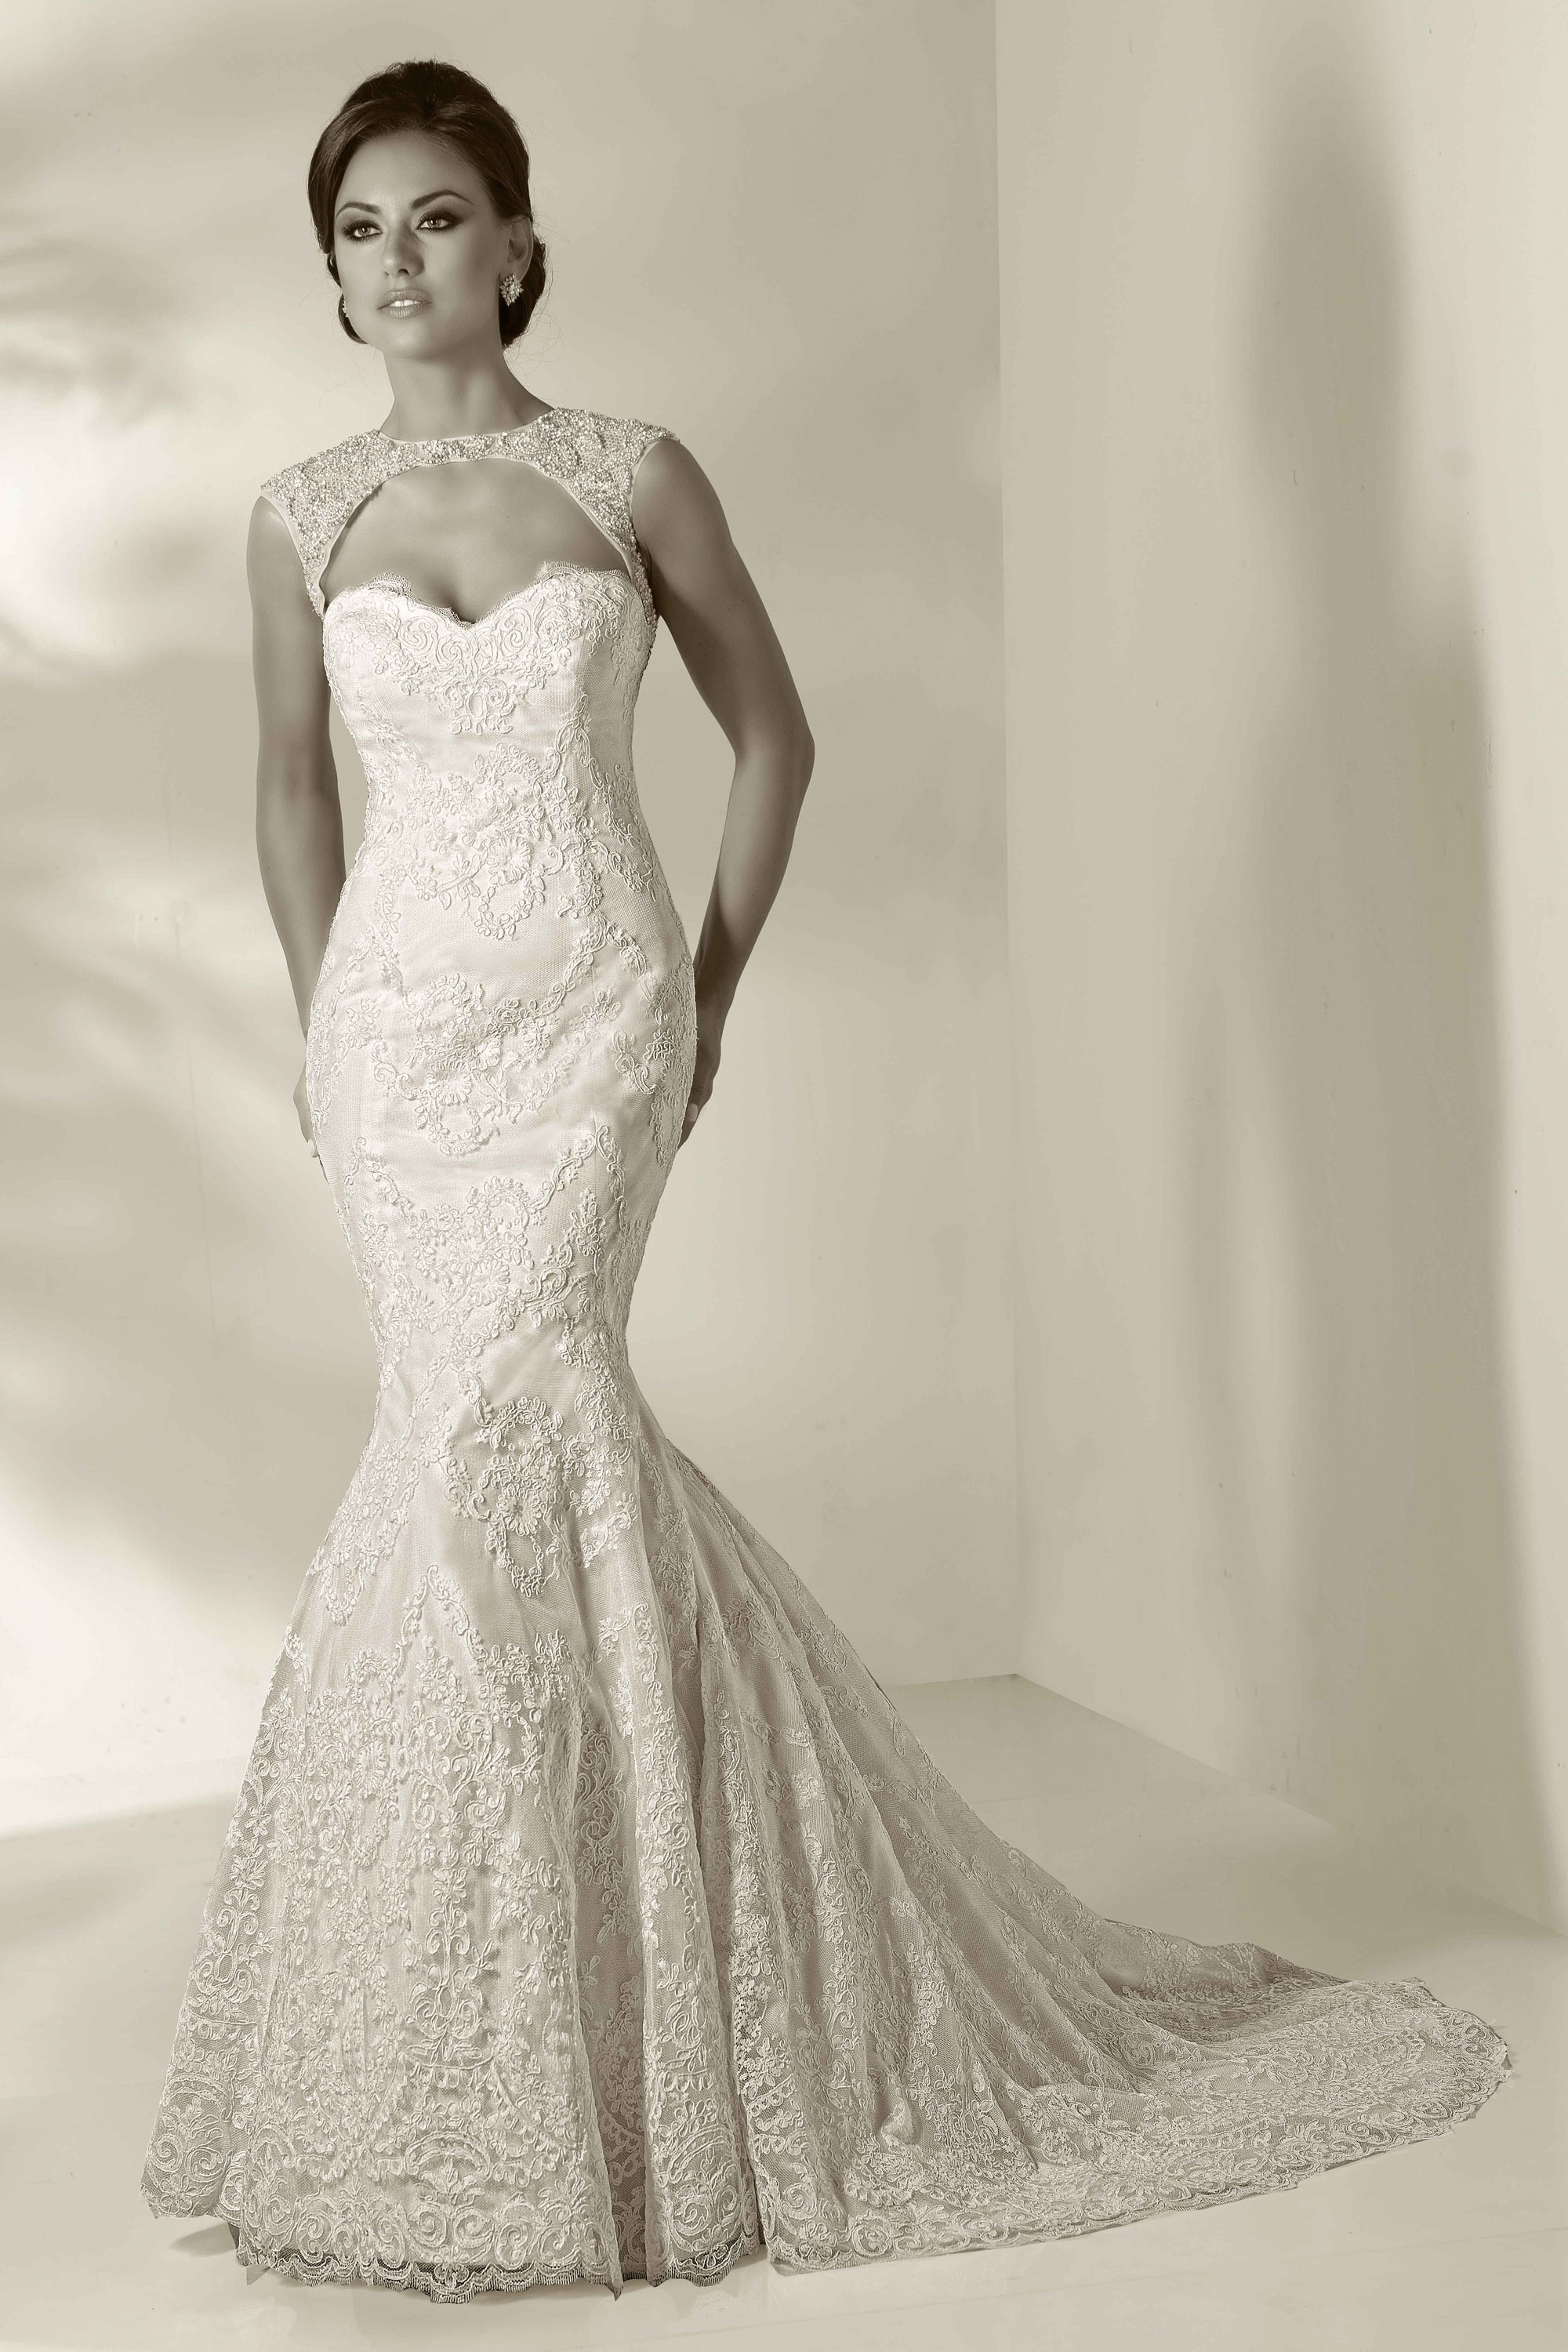 cristiano-lucci-wedding-dresses-3-01052014